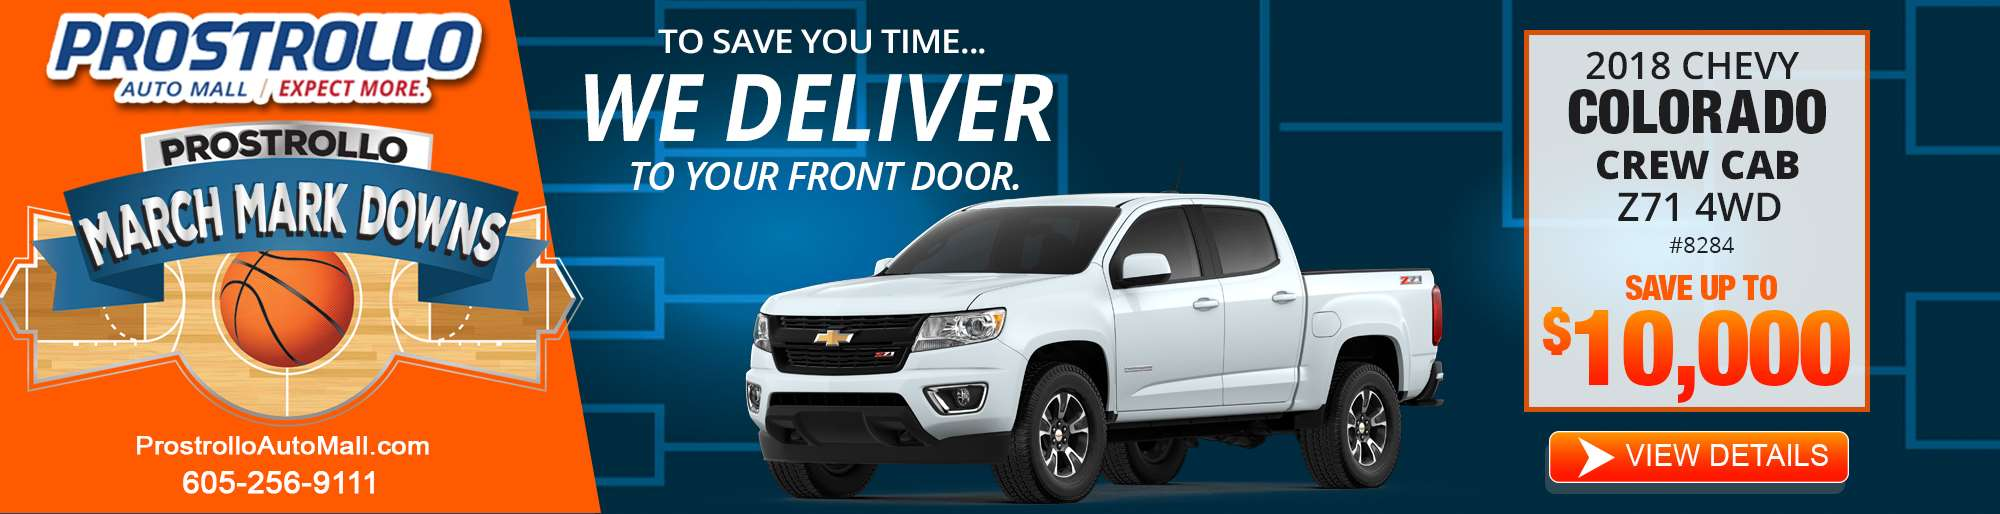 2018 Chevy Colorado Crew Cab 8284